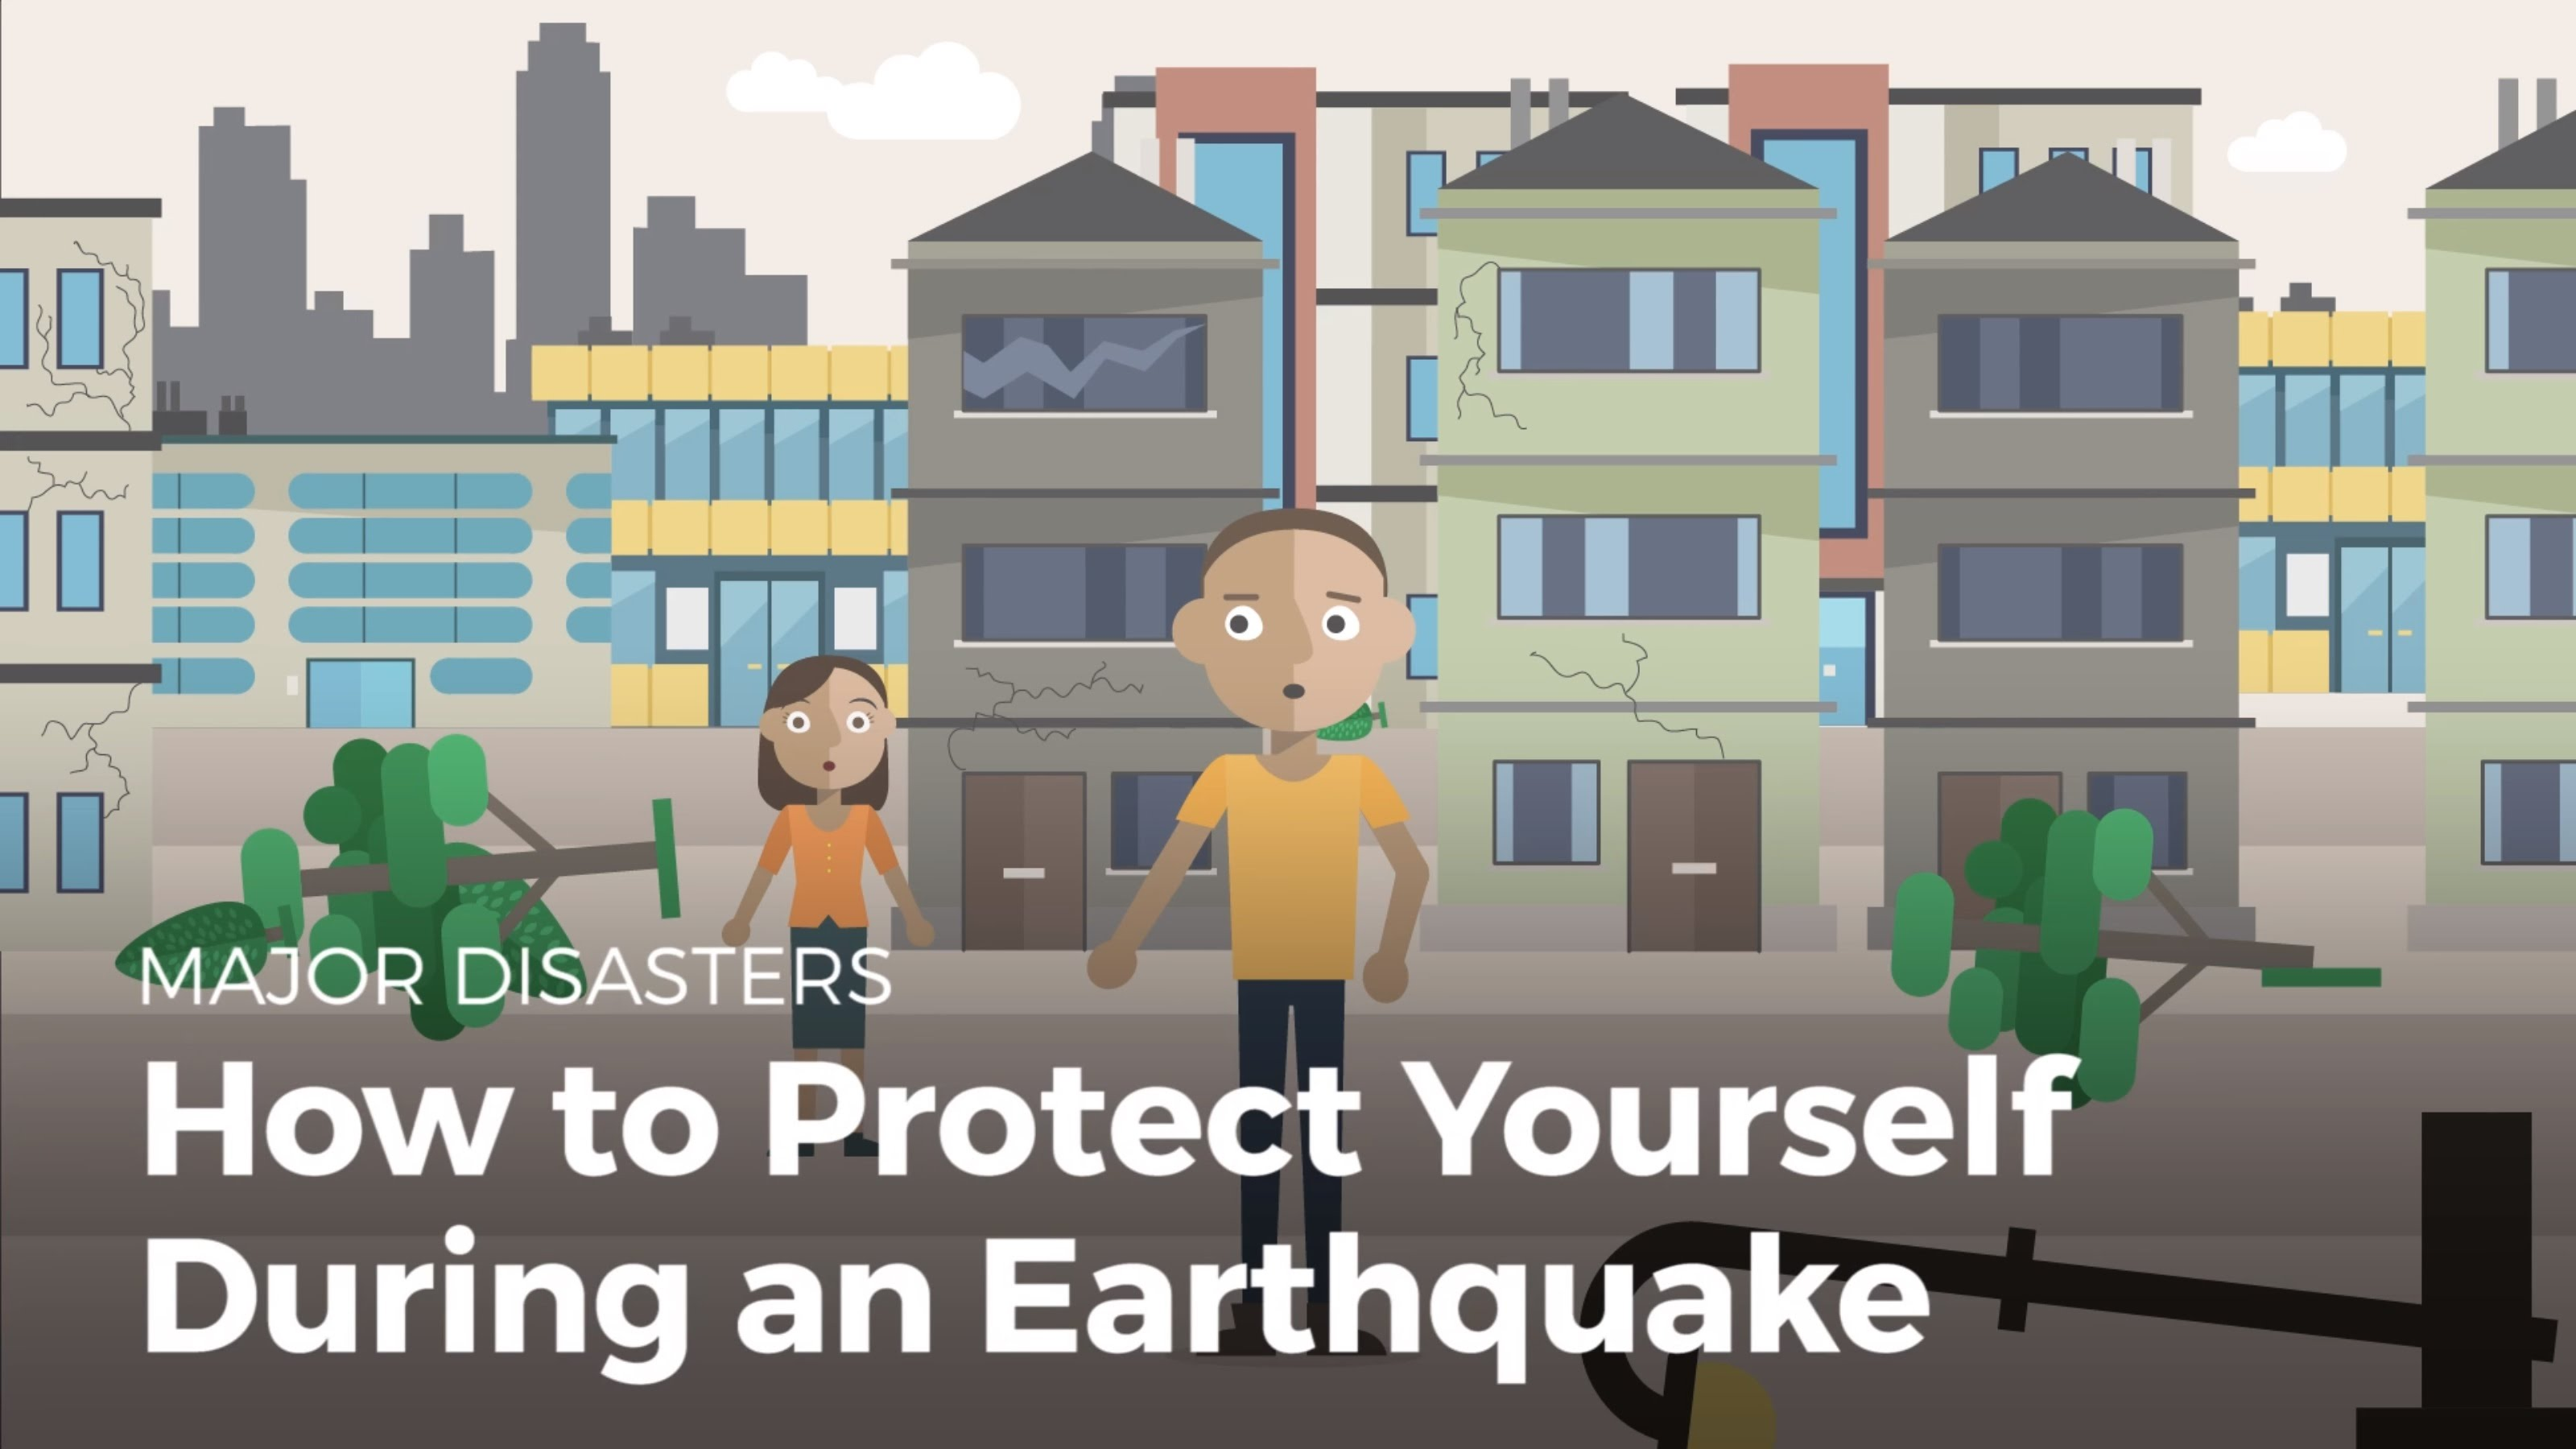 「全台搖不停,防震常識要知道!」- How to Protect Yourself during an Earthquake